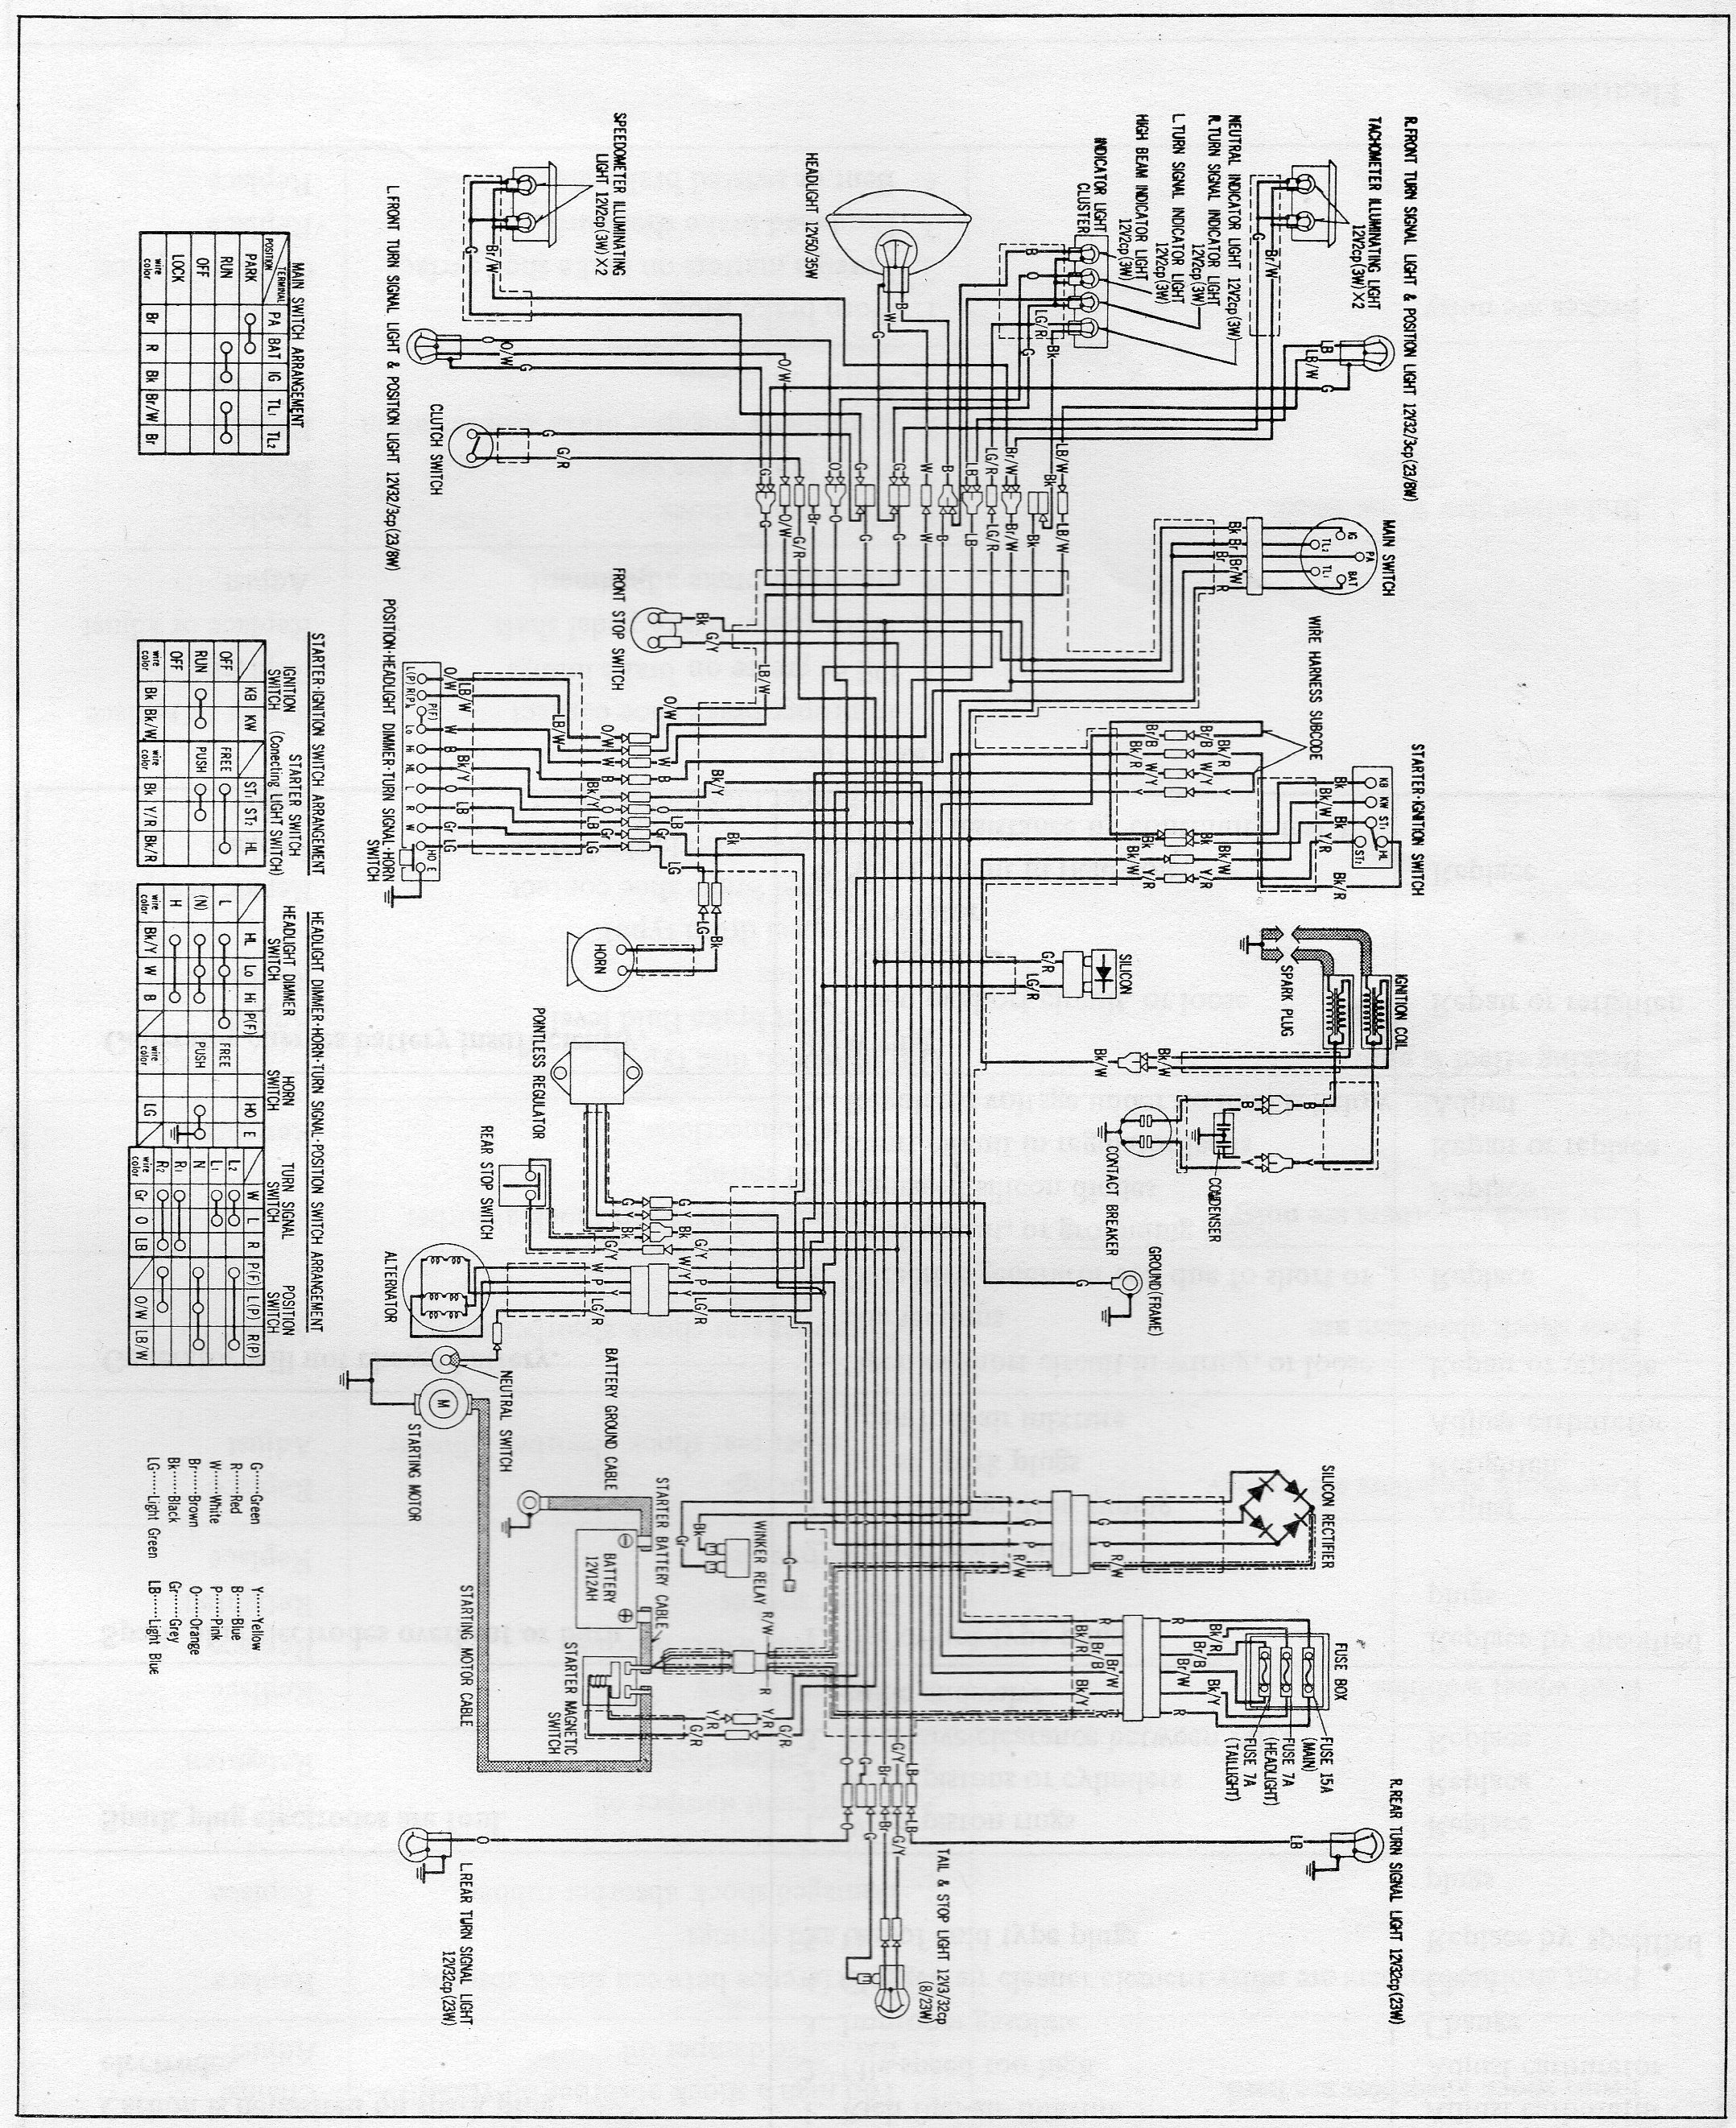 Lifan 125Cc Wiring Diagram from www.hondatwins.net